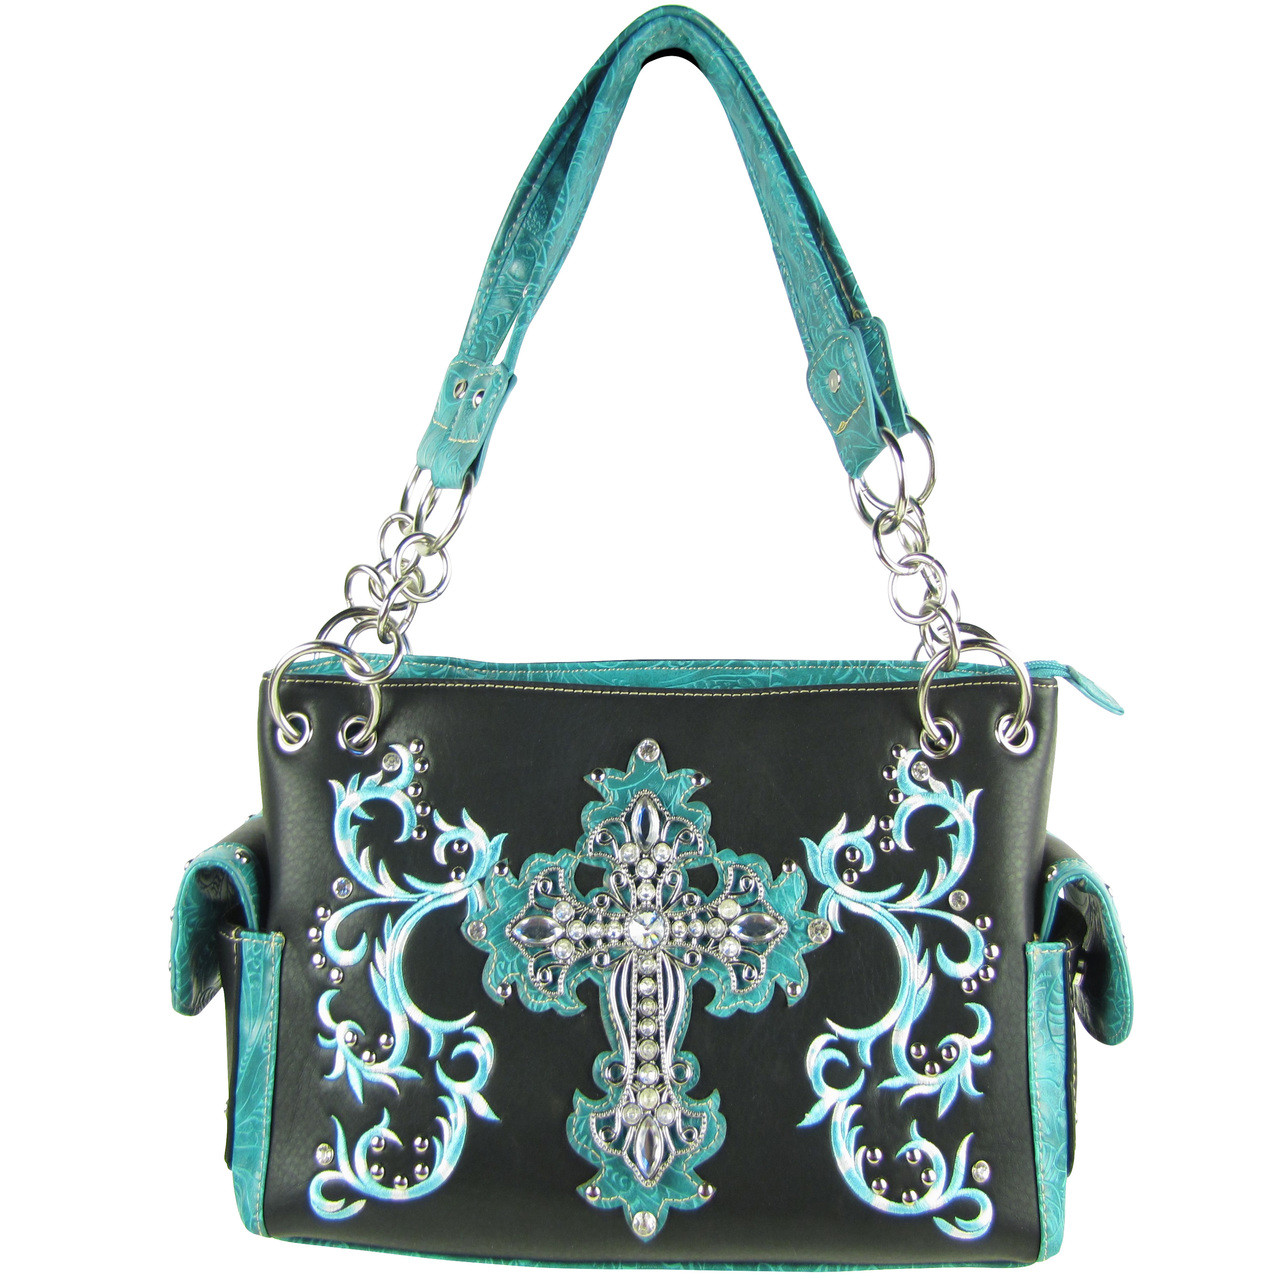 BLACK TURQUOISE RHINESTONE CROSS LOOK SHOULDER HANDBAG HB1-64LCRBLK/TRQ